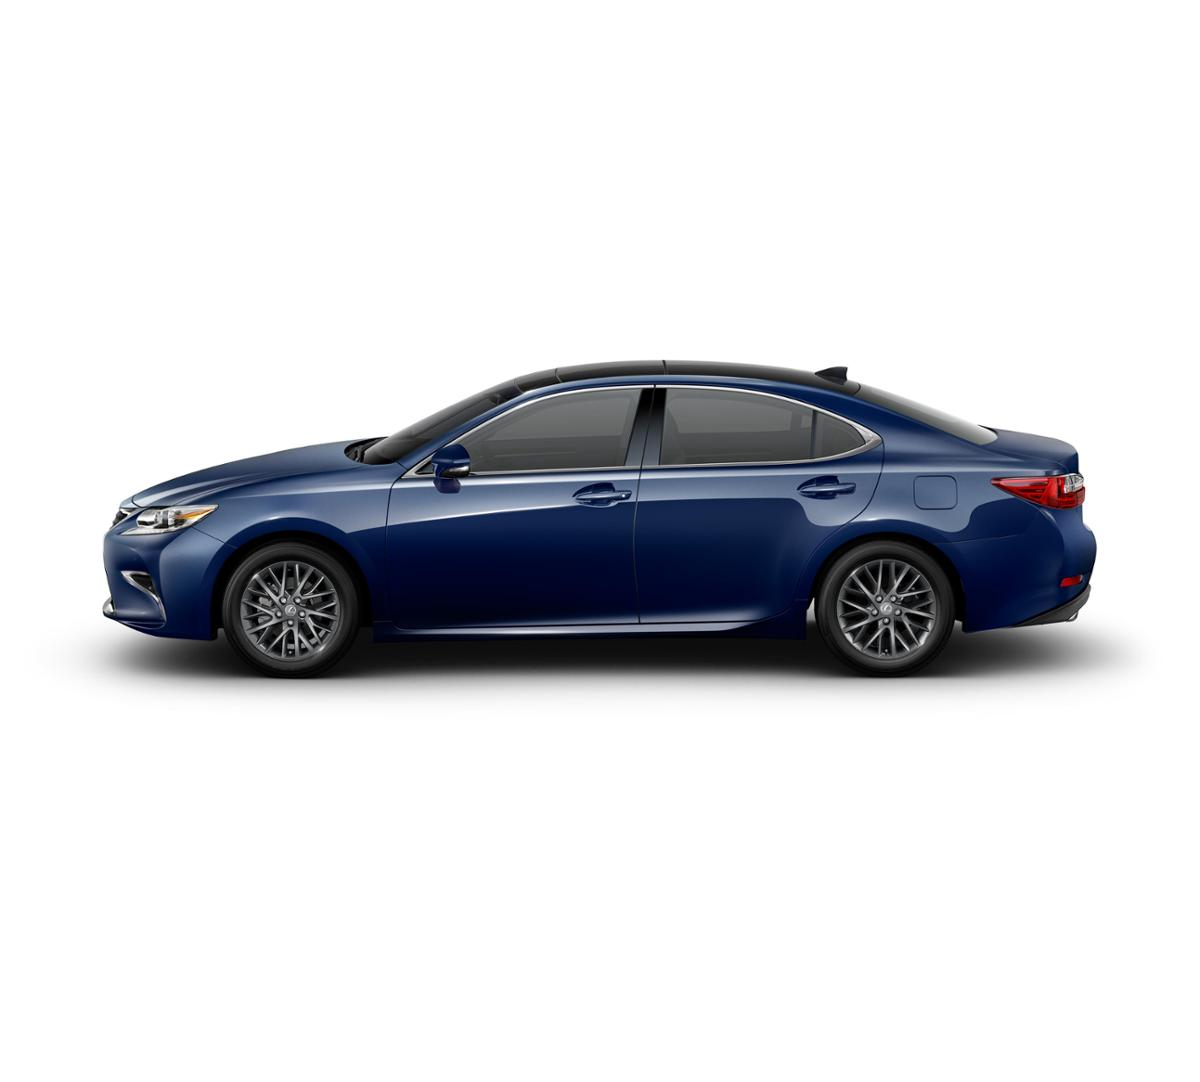 2018 Lexus ES 350 Vehicle Photo in Santa Barbara, CA 93105